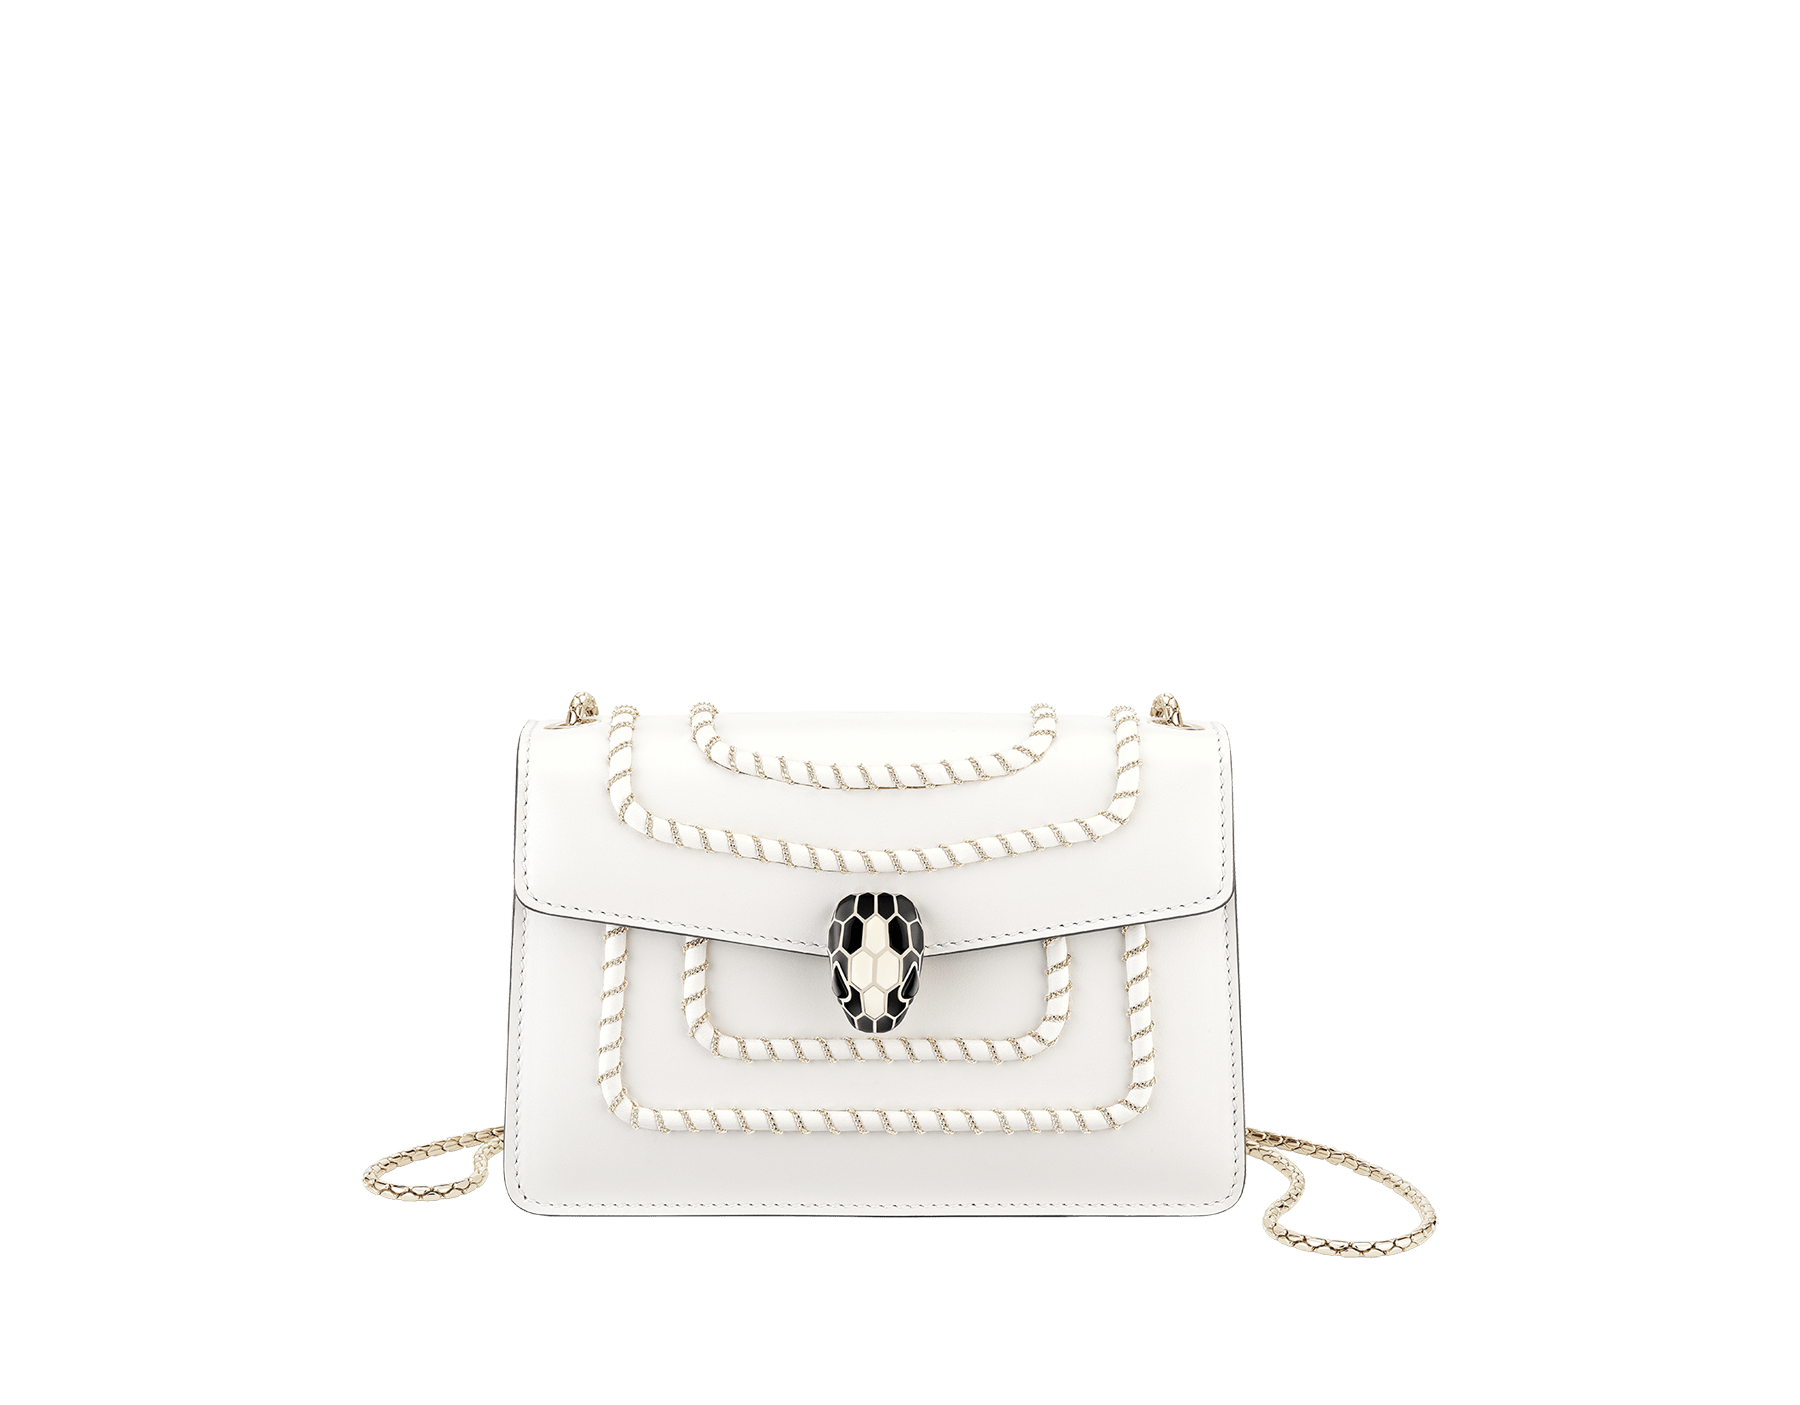 Serpenti Forever mini crossbody bag in white agate calf leather with woven chain décor. Brass light gold-plated snake head closure in black and white enamel, with black onyx eyes. 288045 image 1